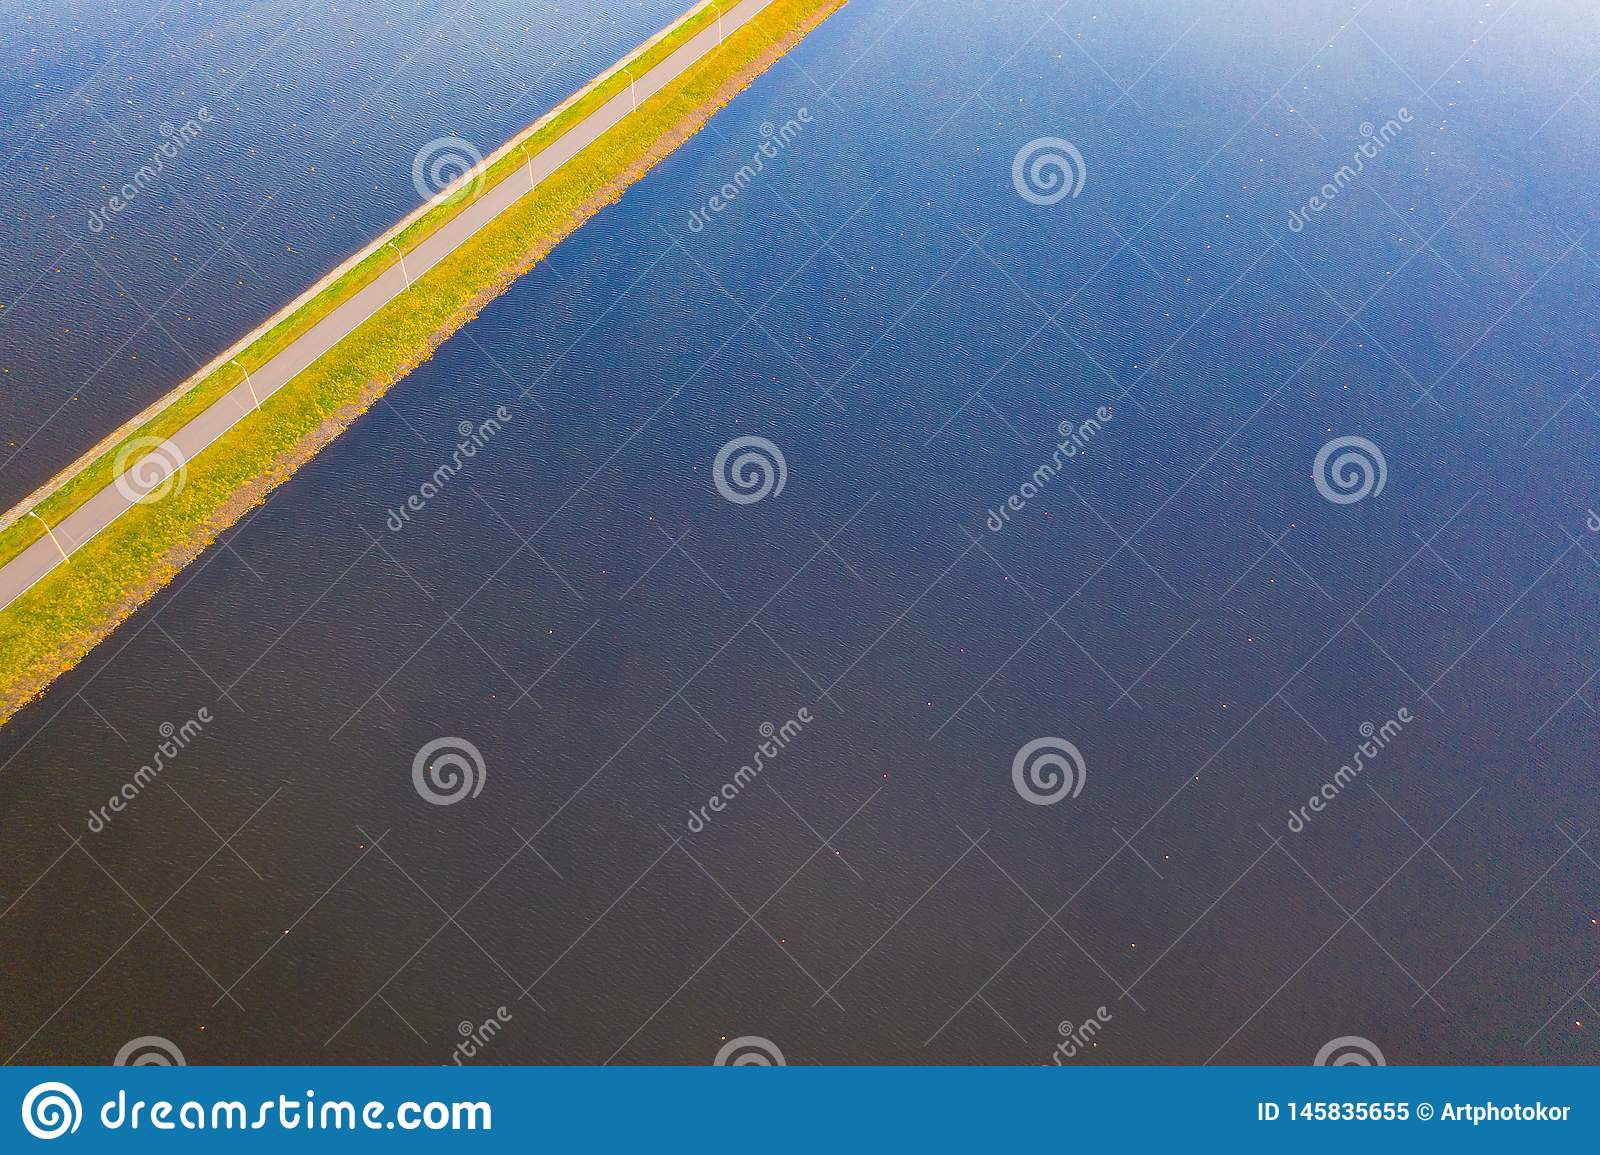 Rippling water surface aerial landscape. Sports concept